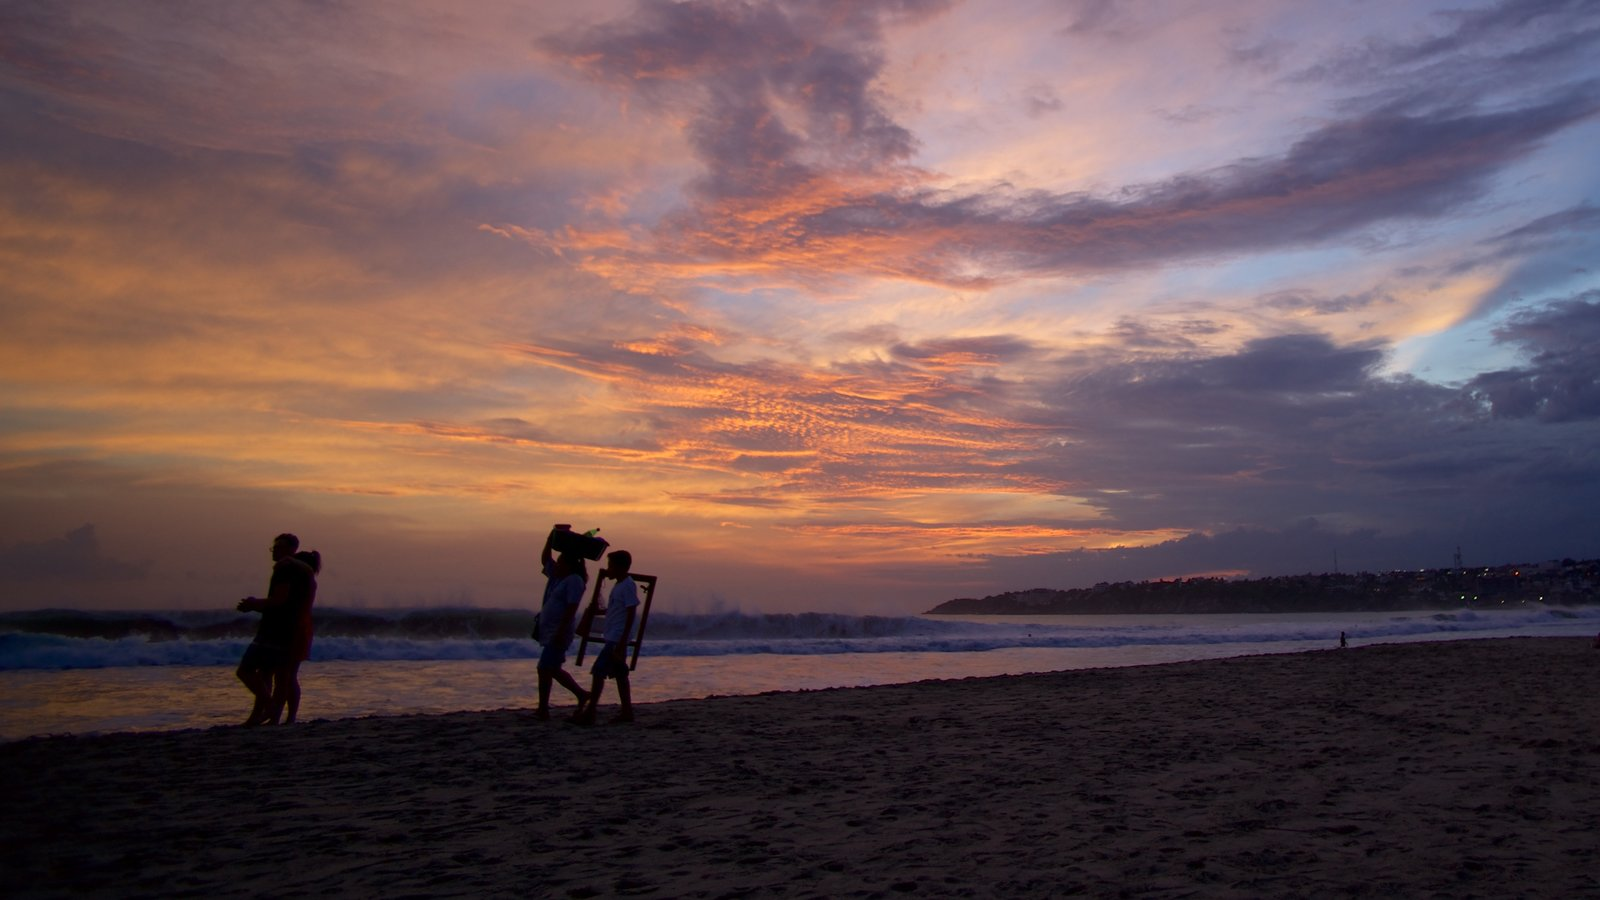 Puerto Escondido showing a sunset and a beach as well as a small group of people